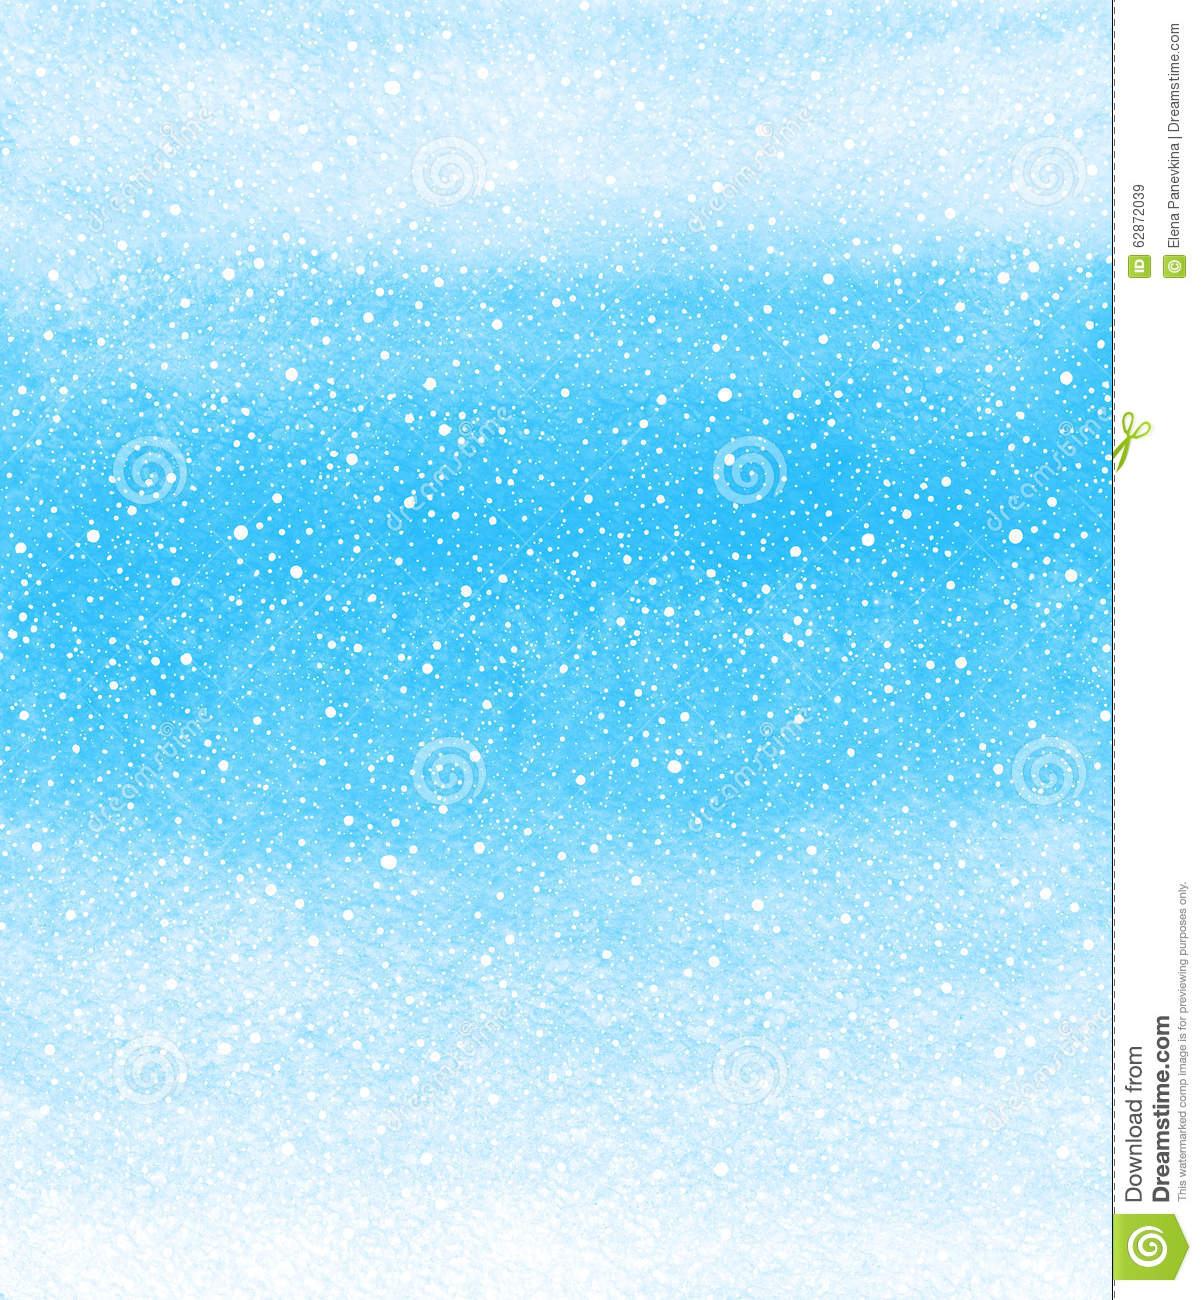 winter watercolor background with falling snow splash